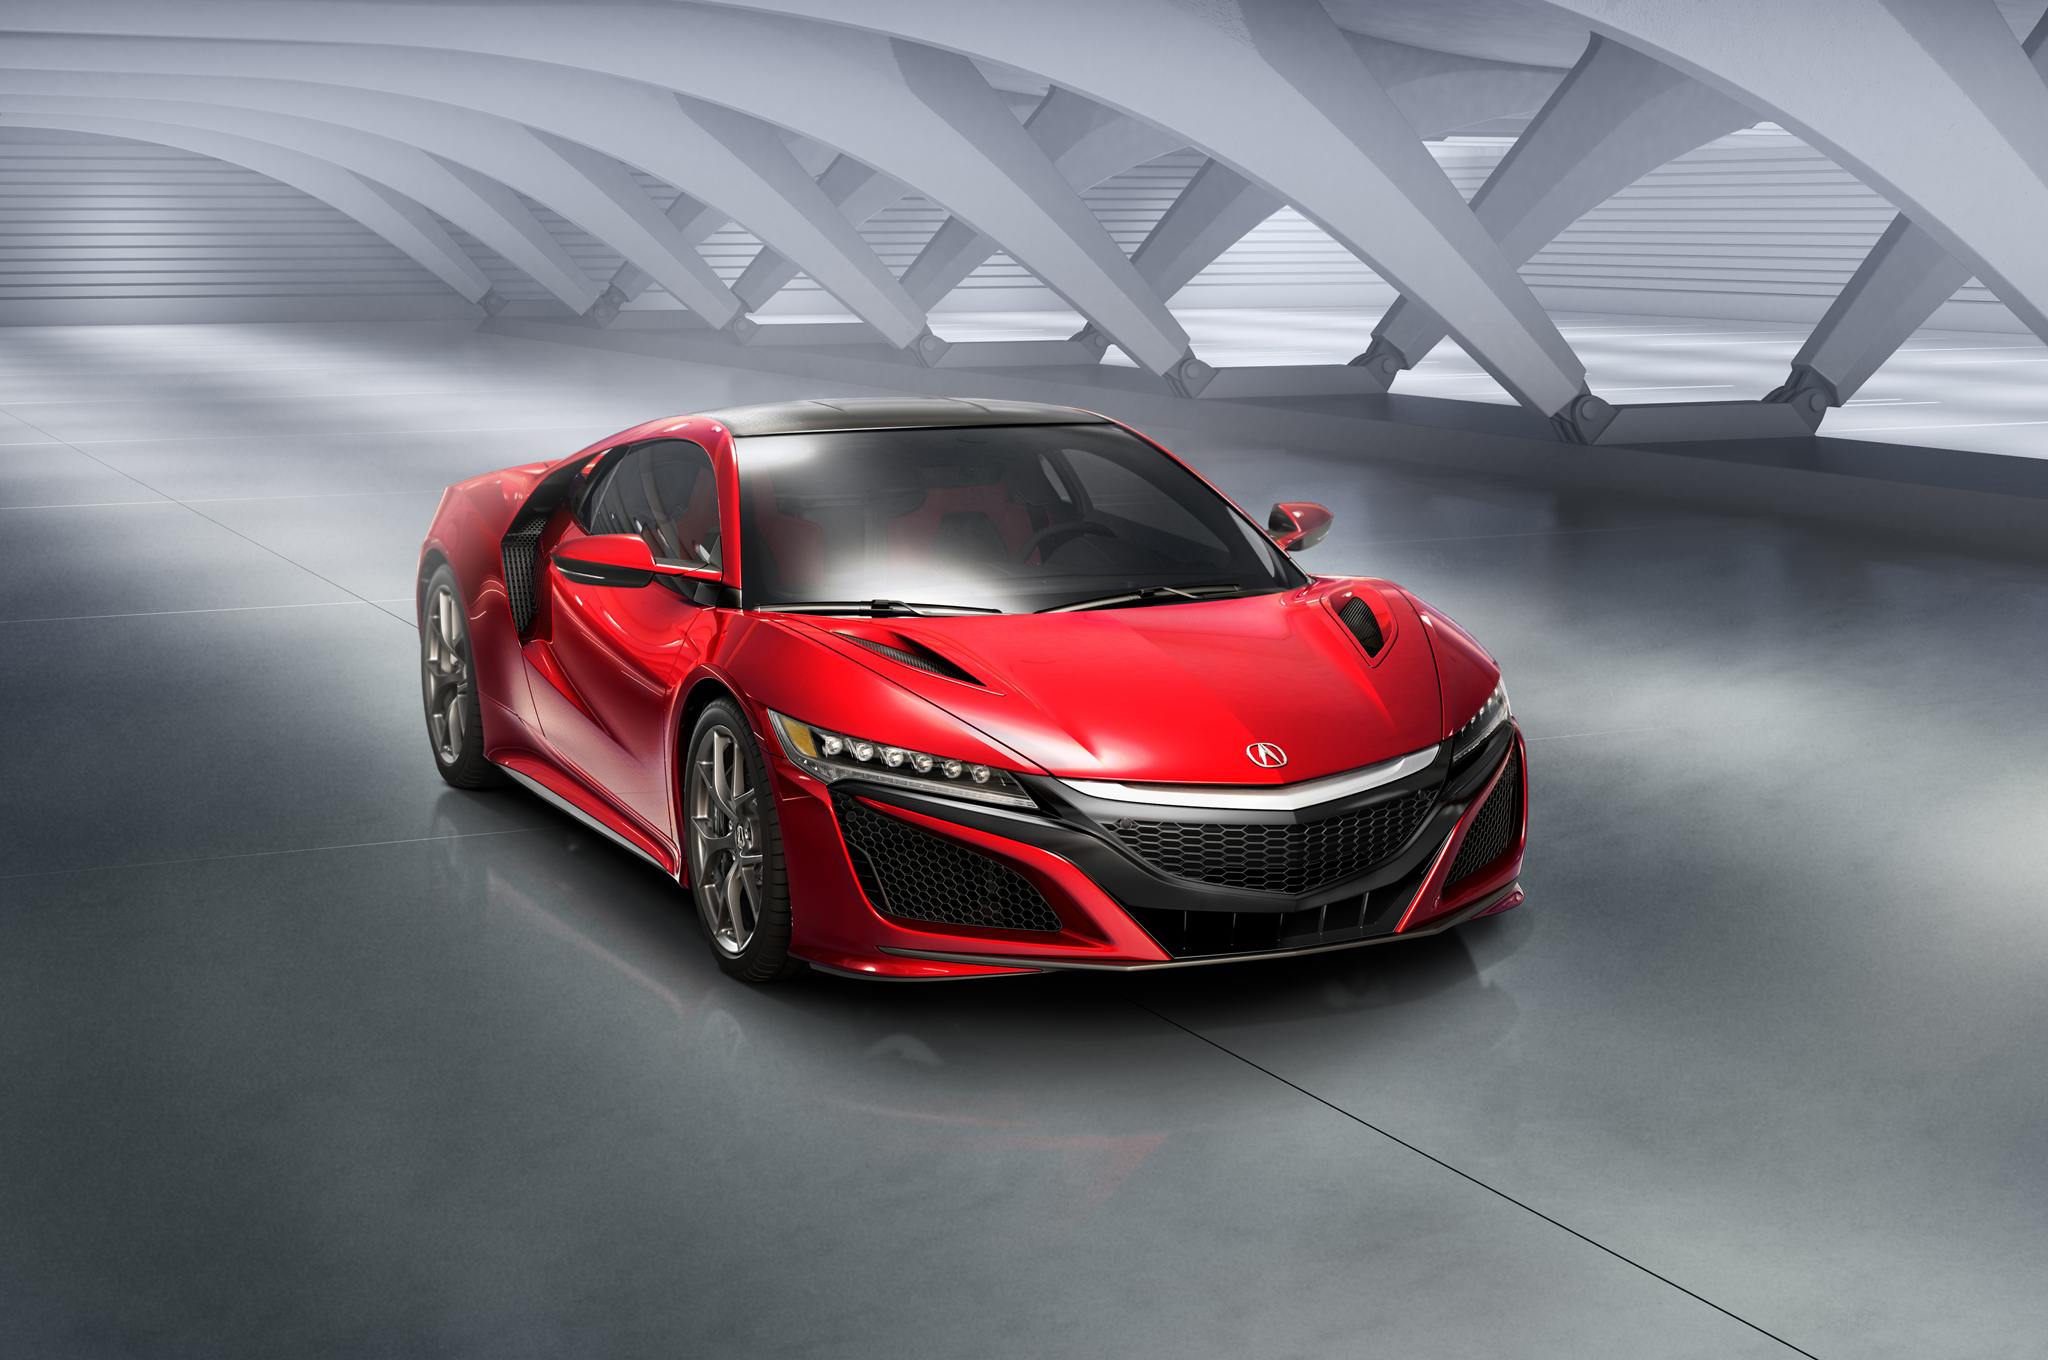 2016 Acura NSX: The Game Changer